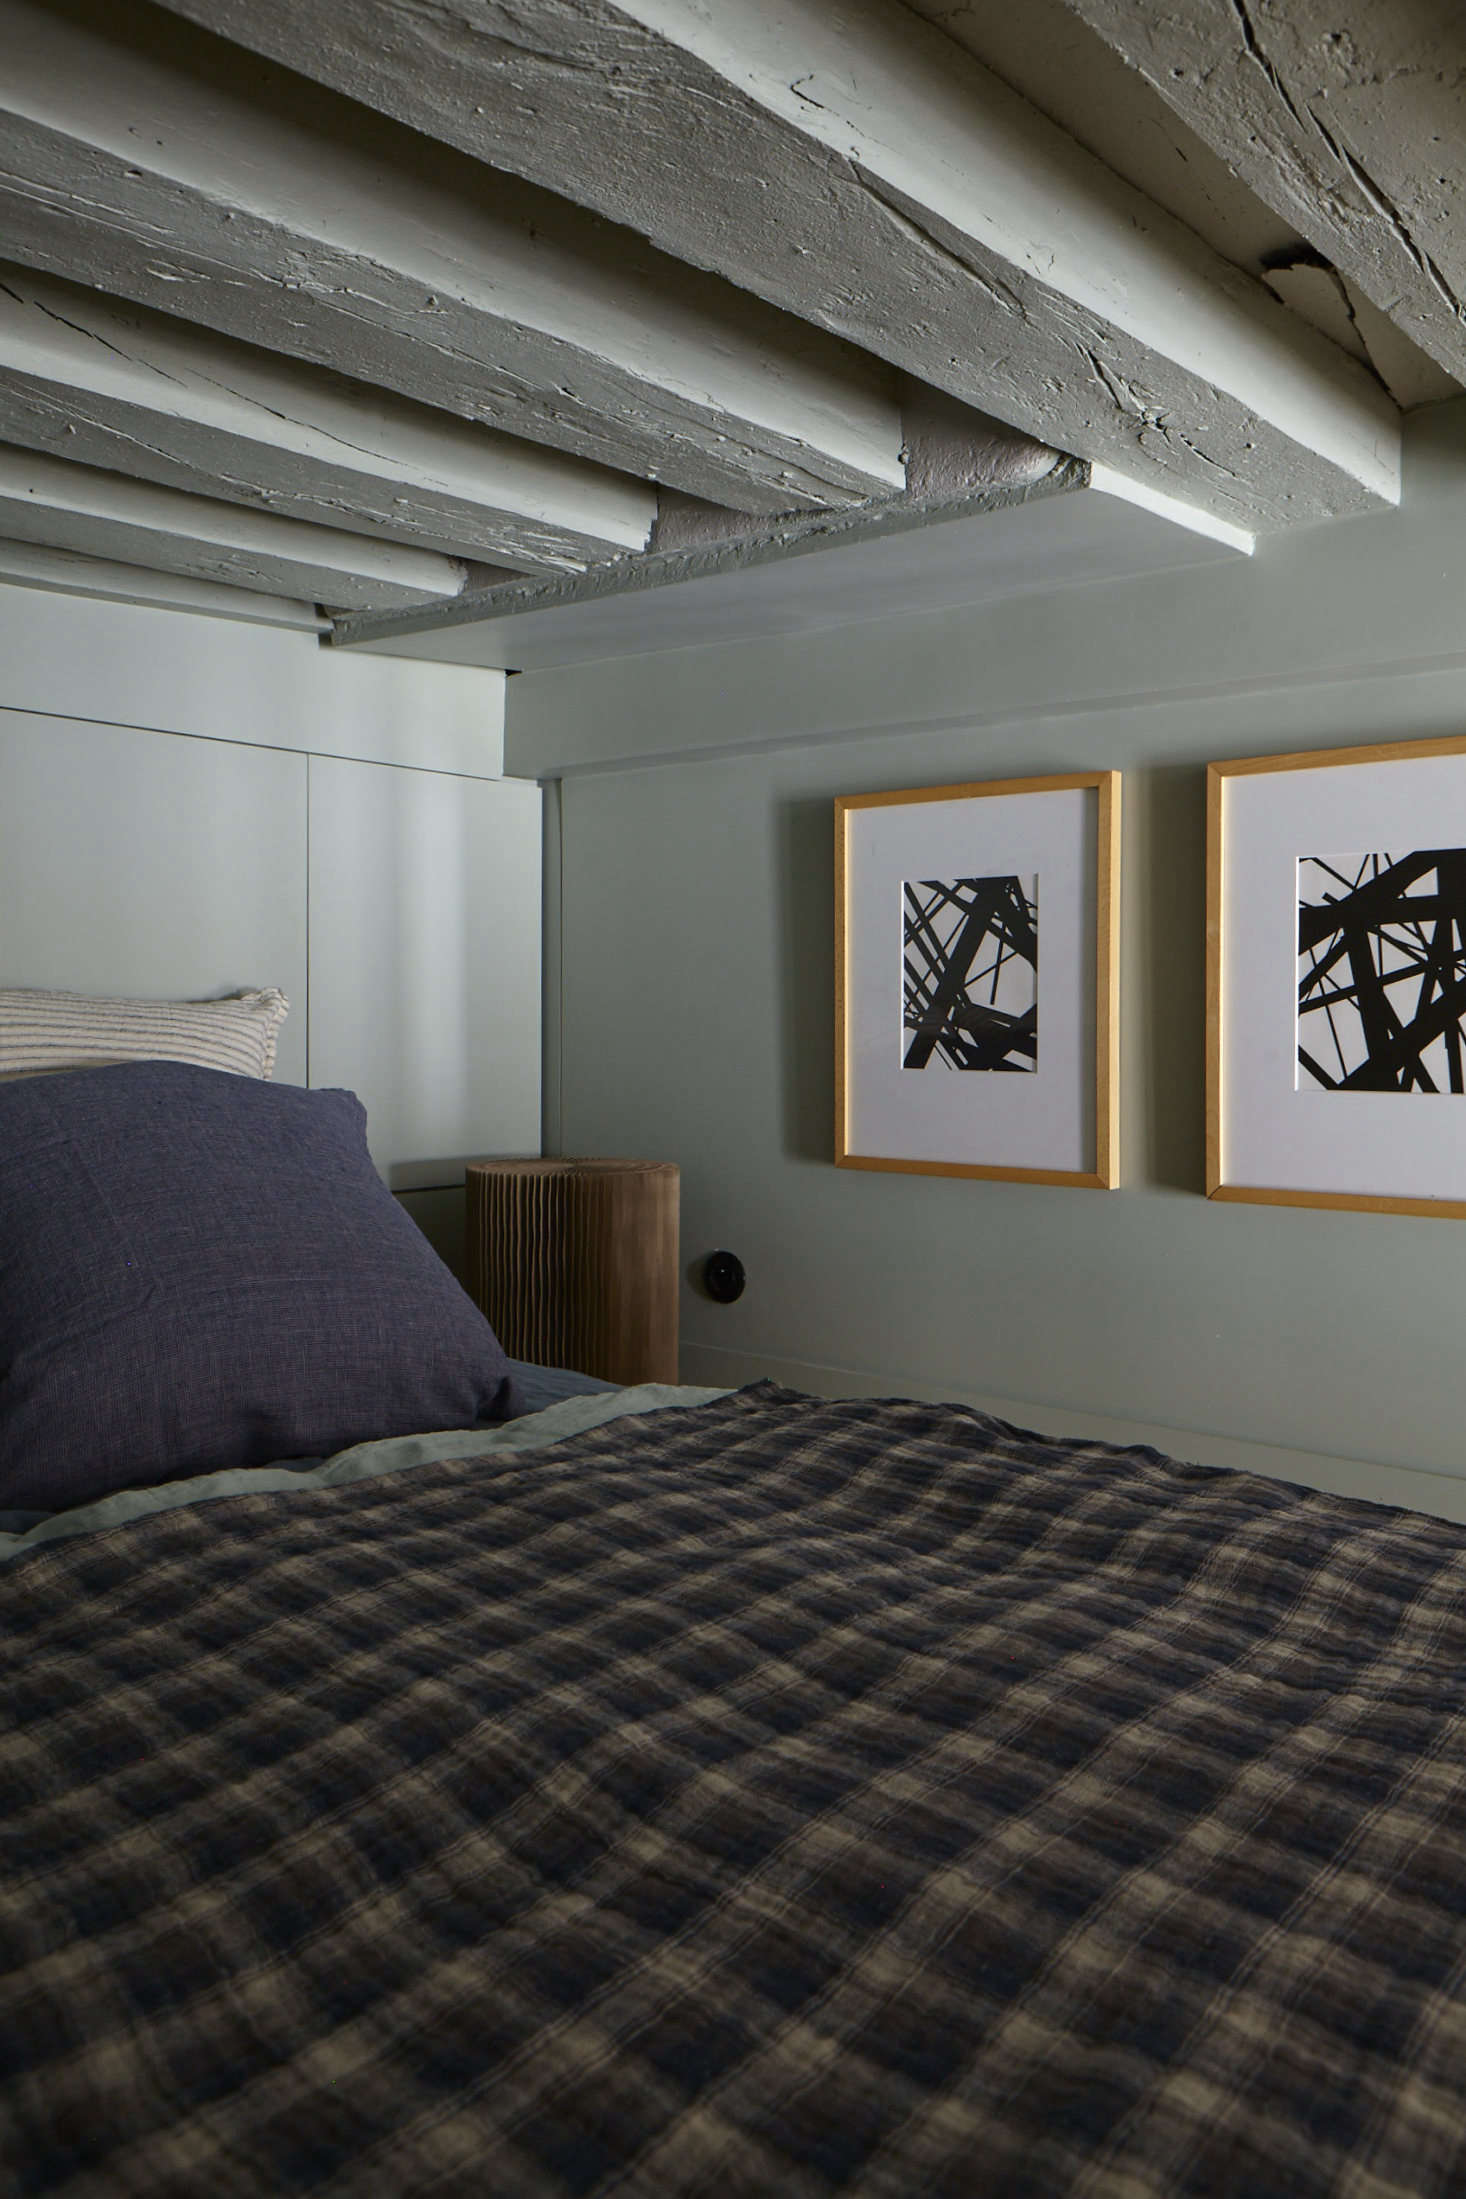 Evennou embraced the tininess of the upstairs sleeping loft, painting walls, ceiling, and beams alike in a pale green.